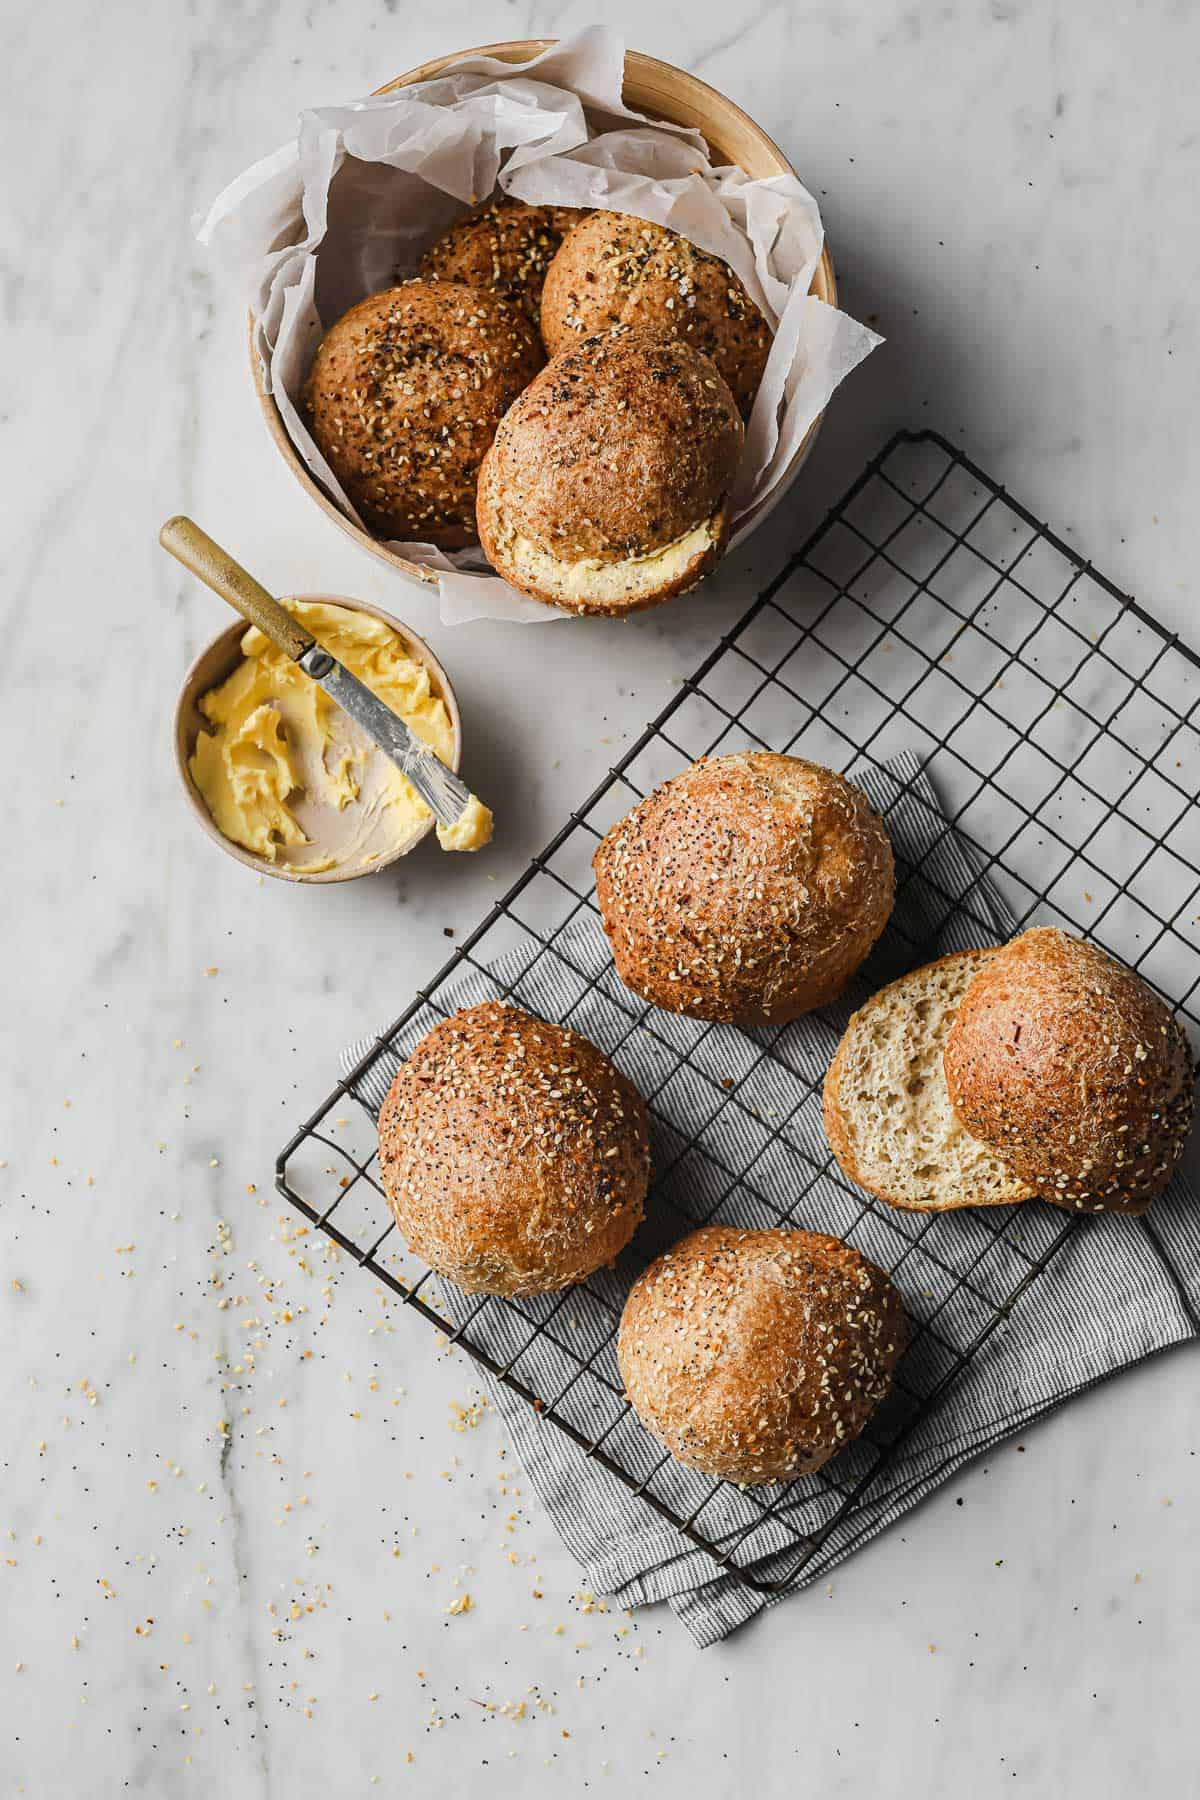 keto dinner rolls, served with everything bagel seasoning in a basket lined with parchment paper